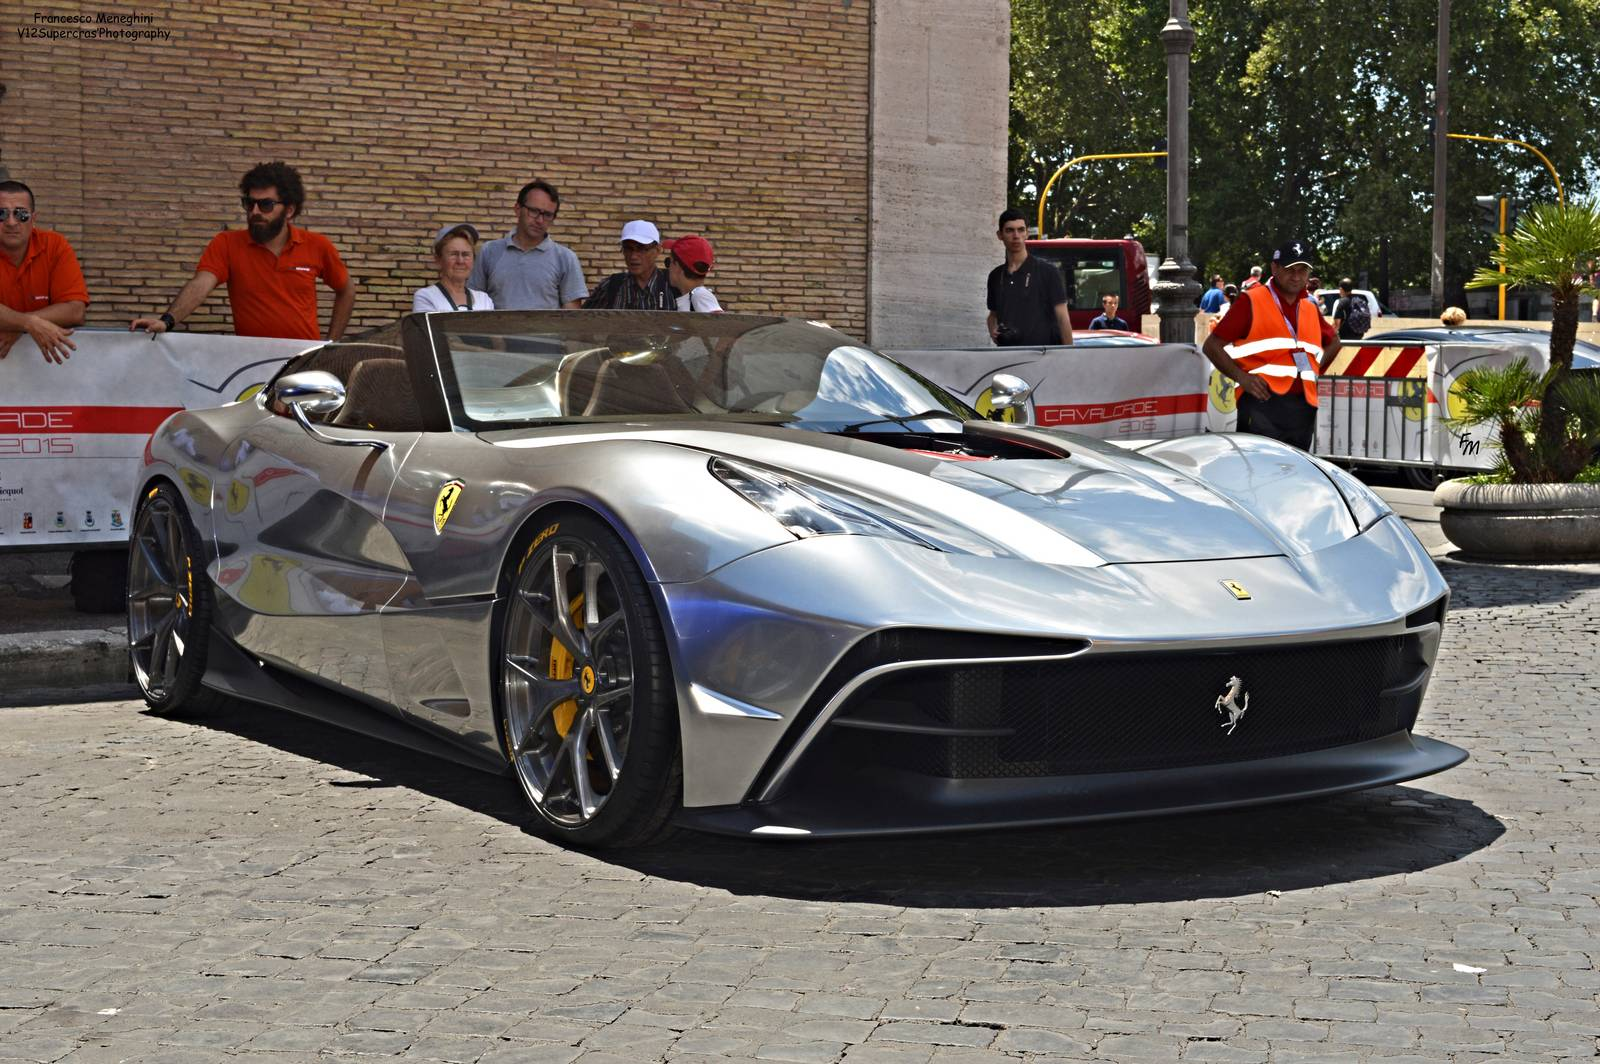 Silver Chrome Ferrari F12 Trs Snapped In Rome Gtspirit